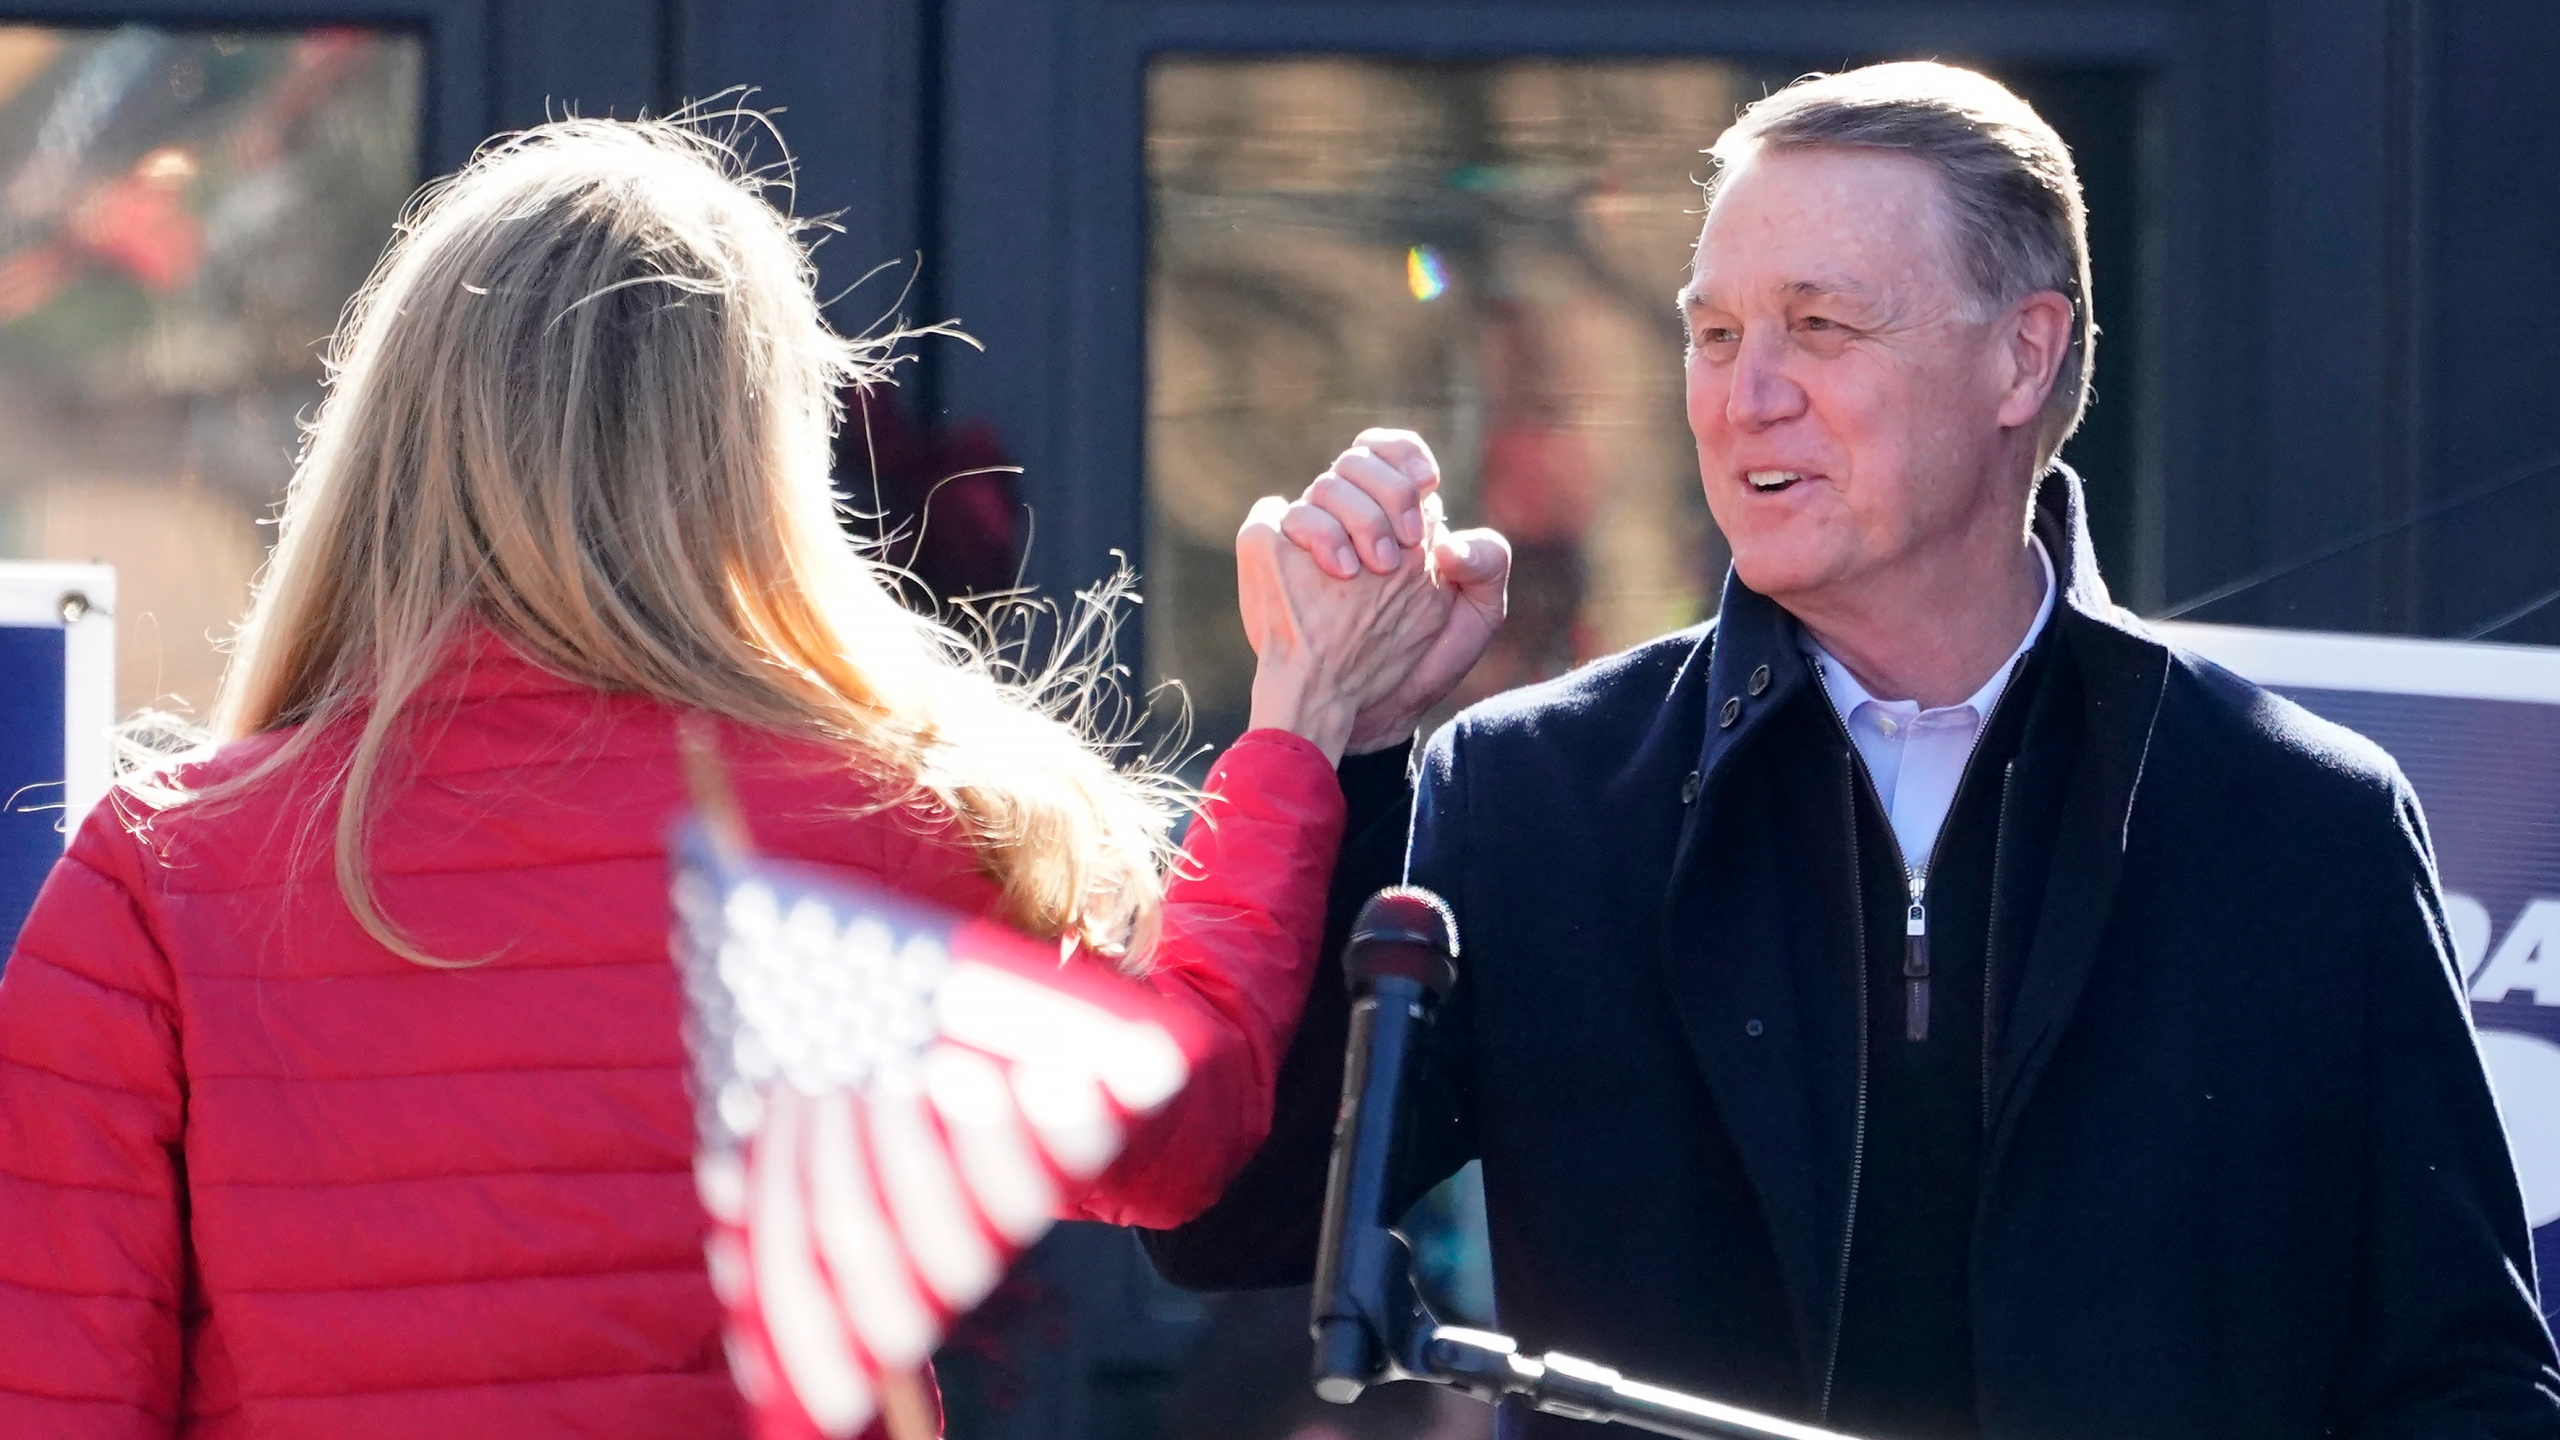 David Perdue, Kelly Loeffler